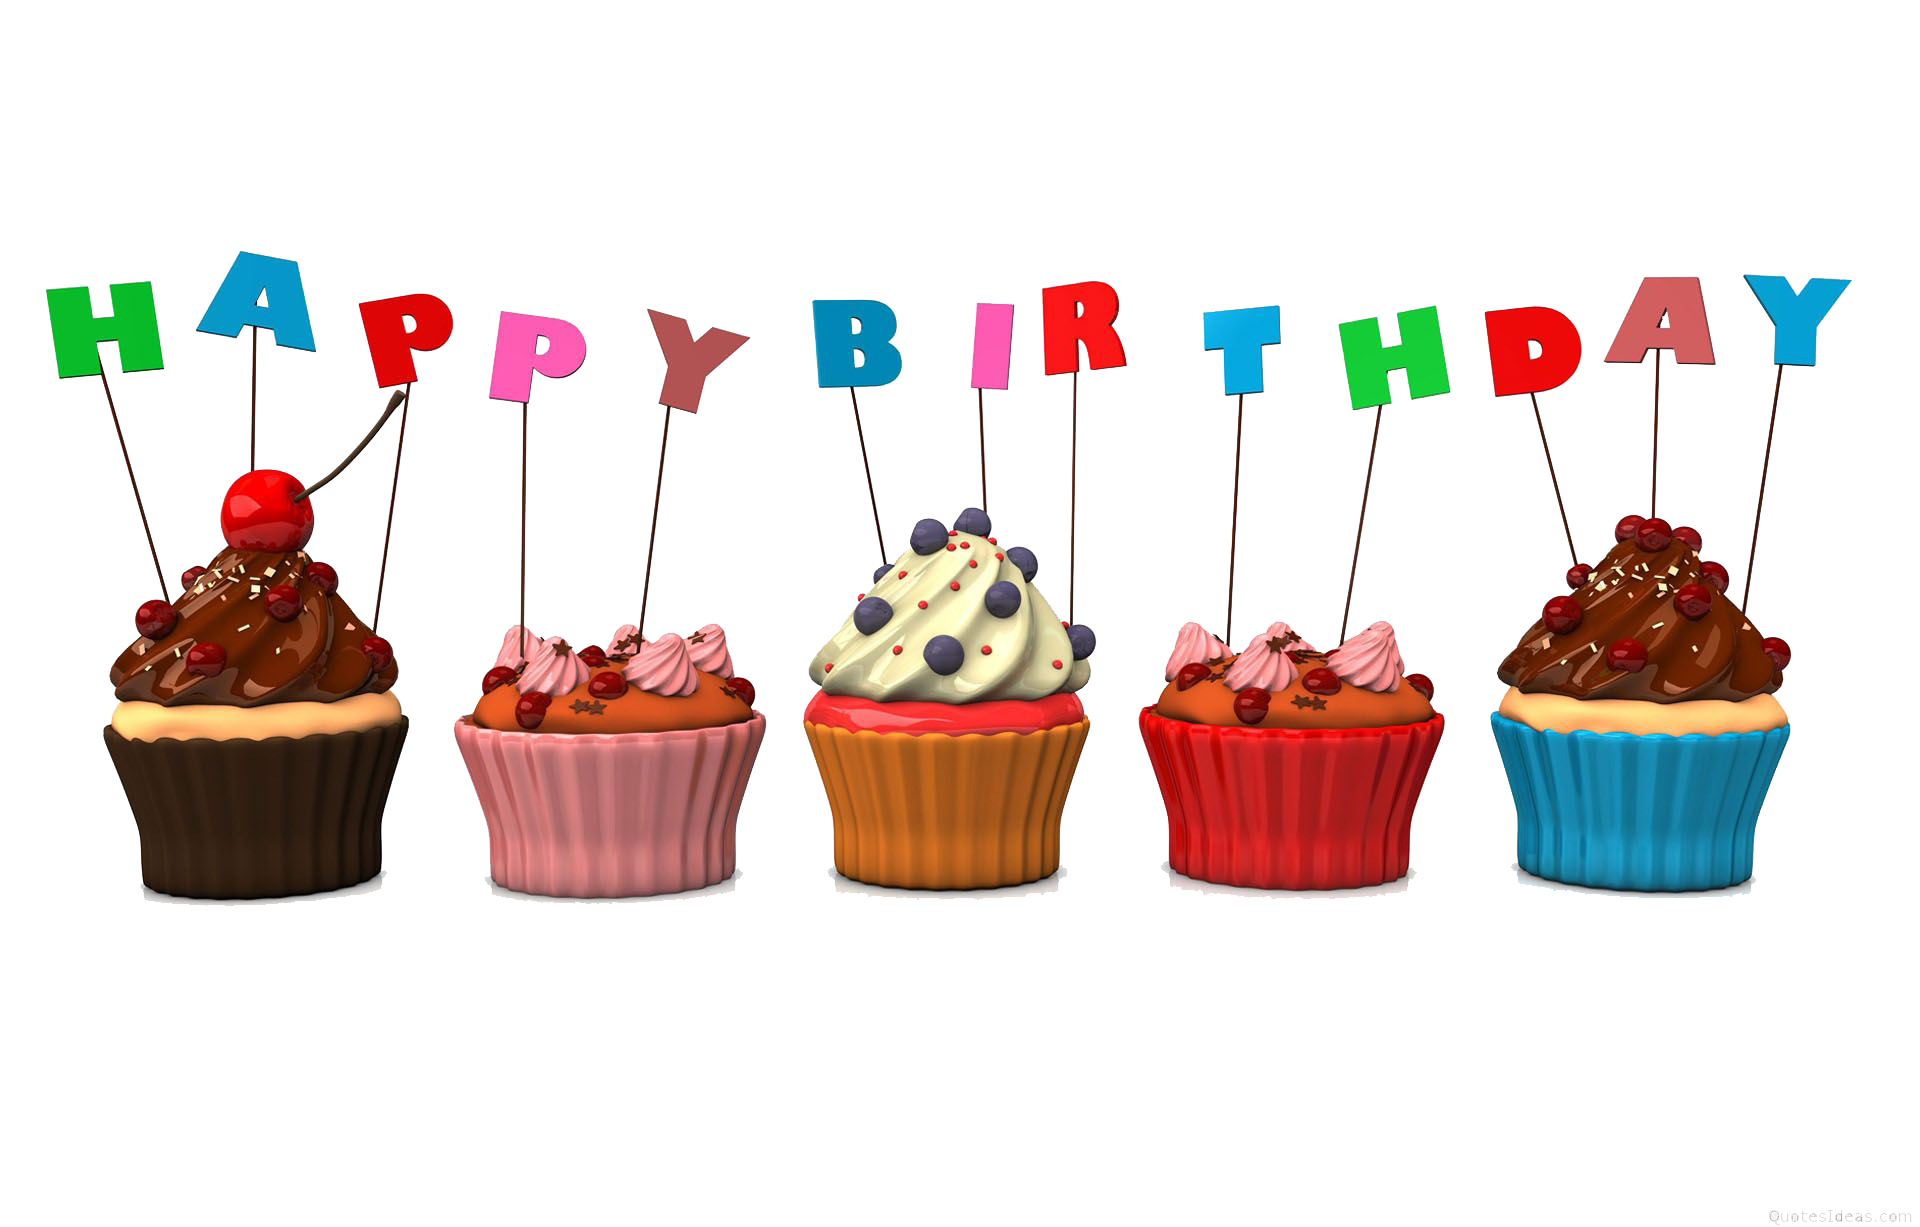 Birthday Cake Png Hd PNG Image - PNG HD Of A Birthday Cake